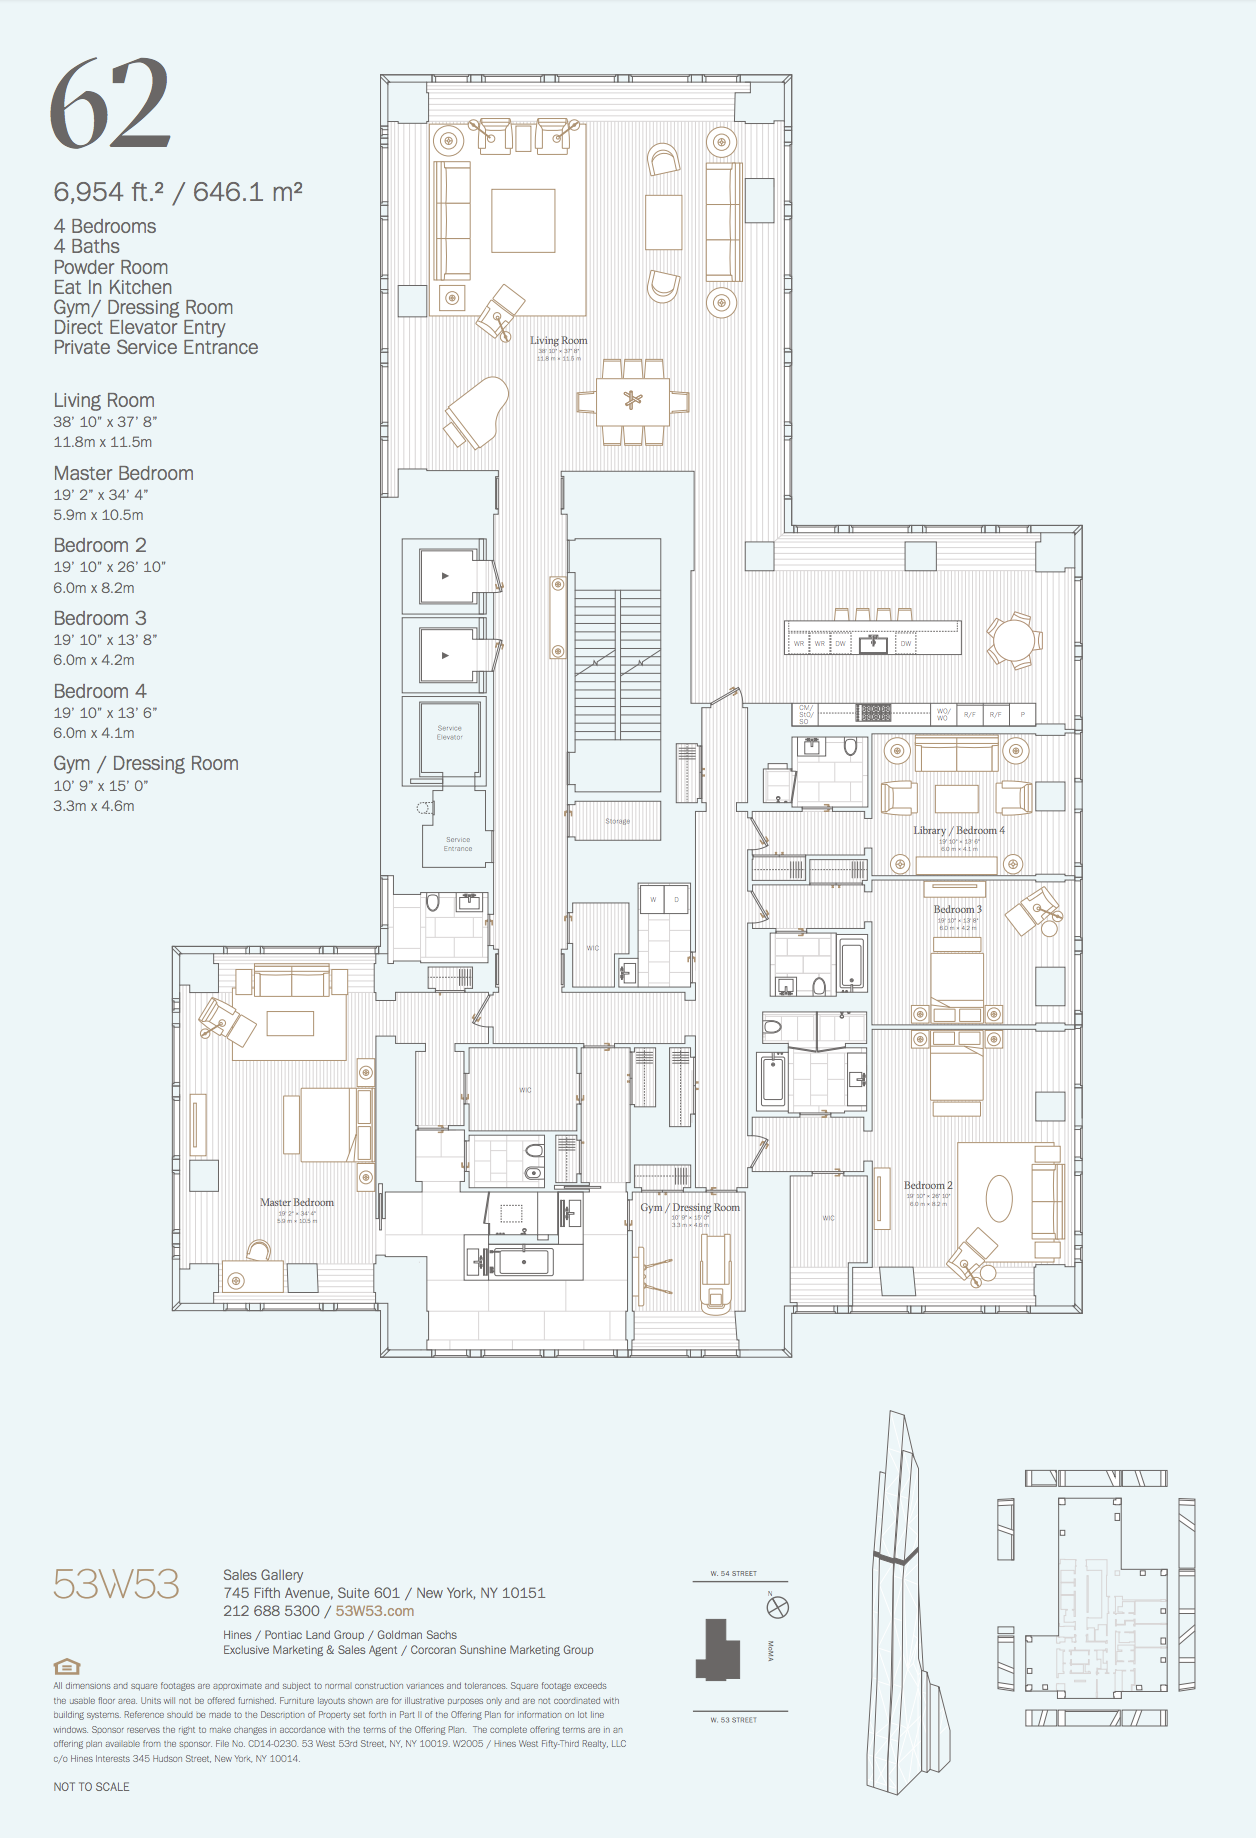 62 4 Bedrooms 4 5 Bathrooms 6 954 Sq Ft 646 0 Sq M View Of The City Park Hotel Room Design Plan Apartment Floor Plans Penthouse Apartment Floor Plan